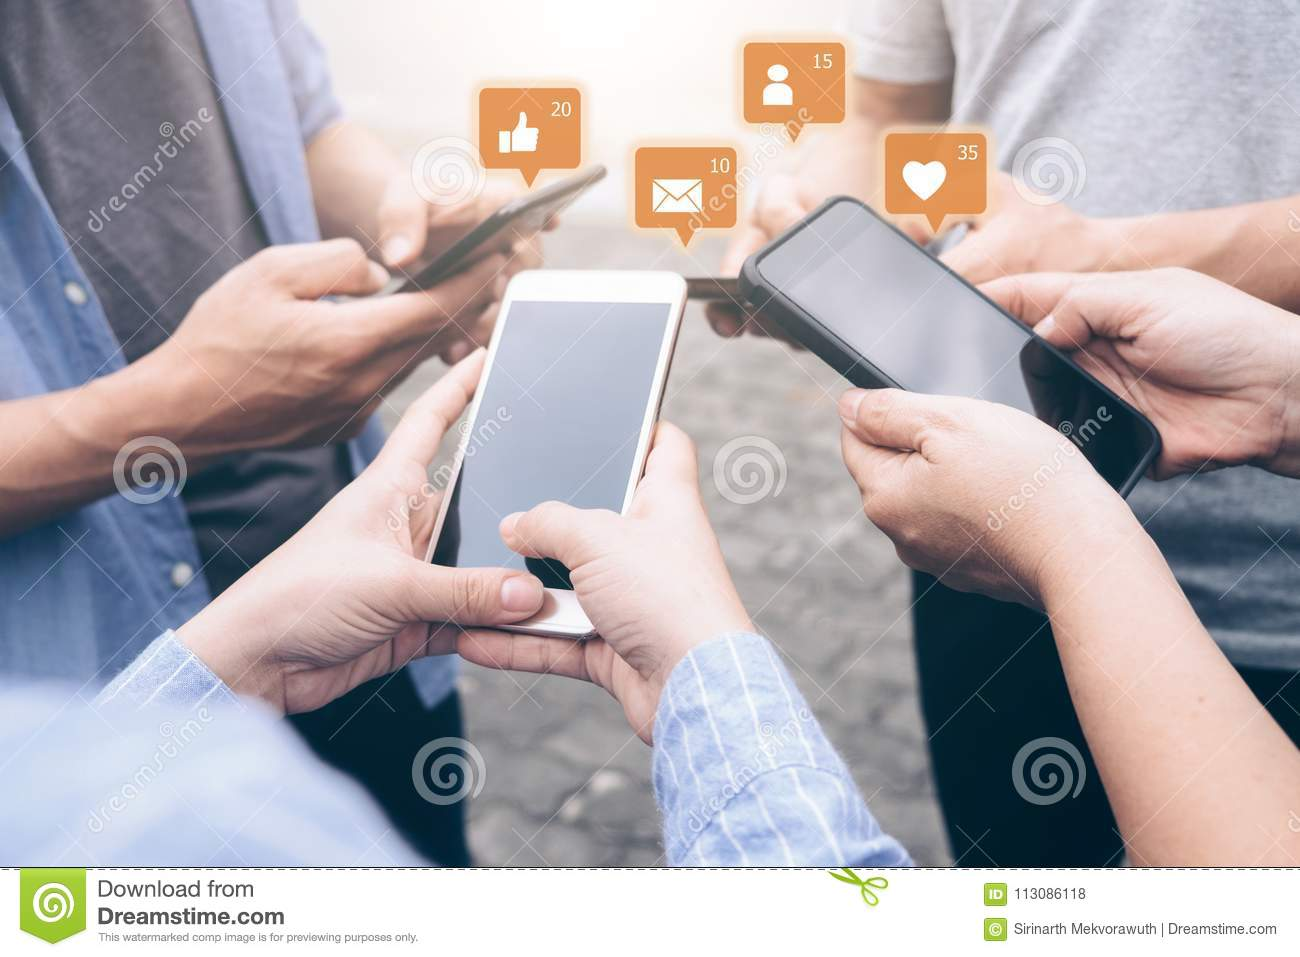 Group of young teen using mobile phones.